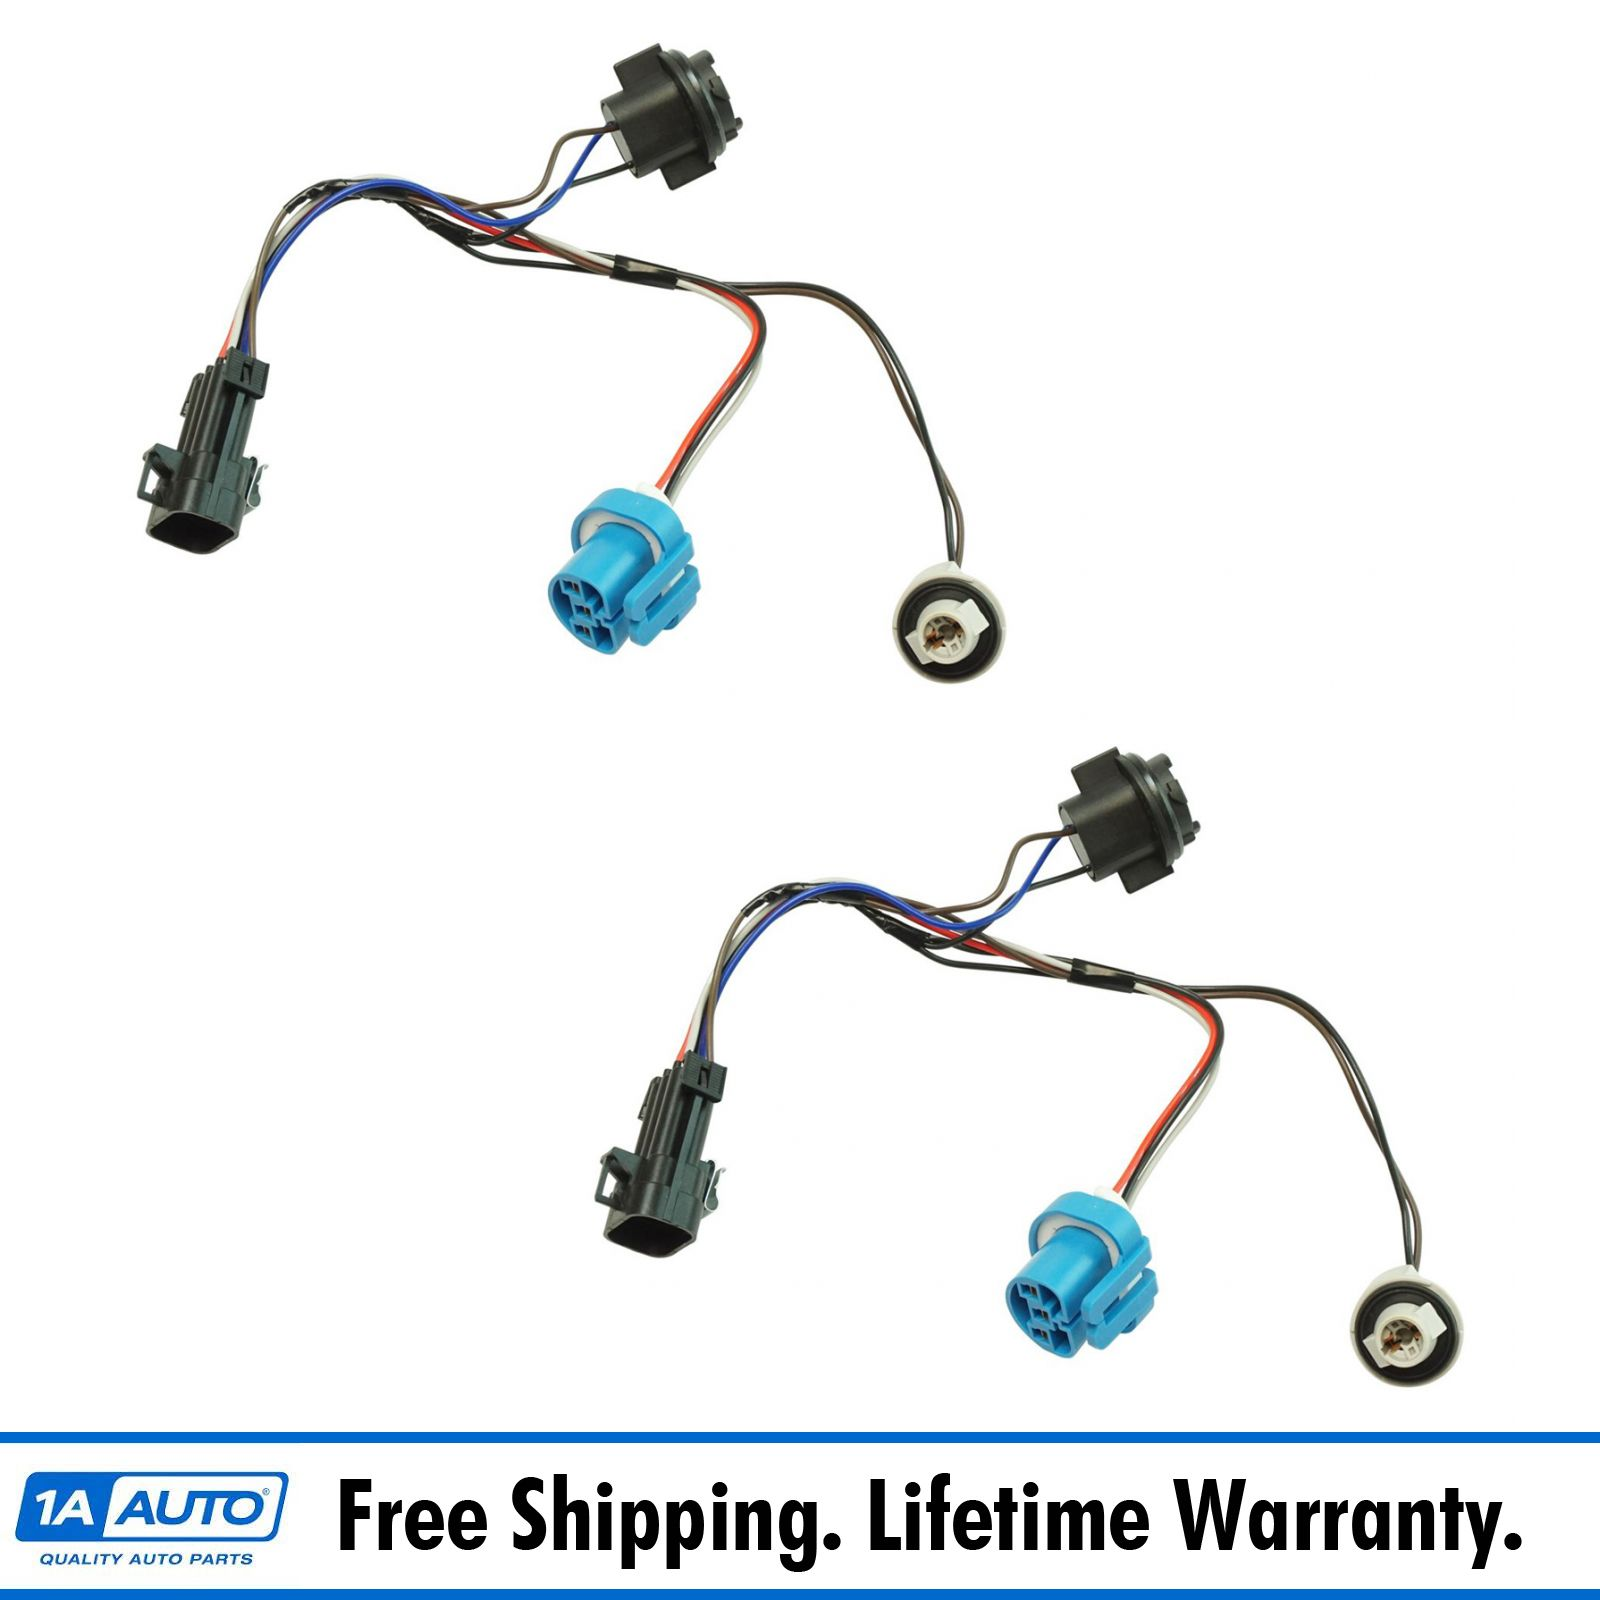 1AZMA00009 dorman headlight wiring harness side pair for chevy cobalt pontiac GM Headlight Wiring Harness at bayanpartner.co